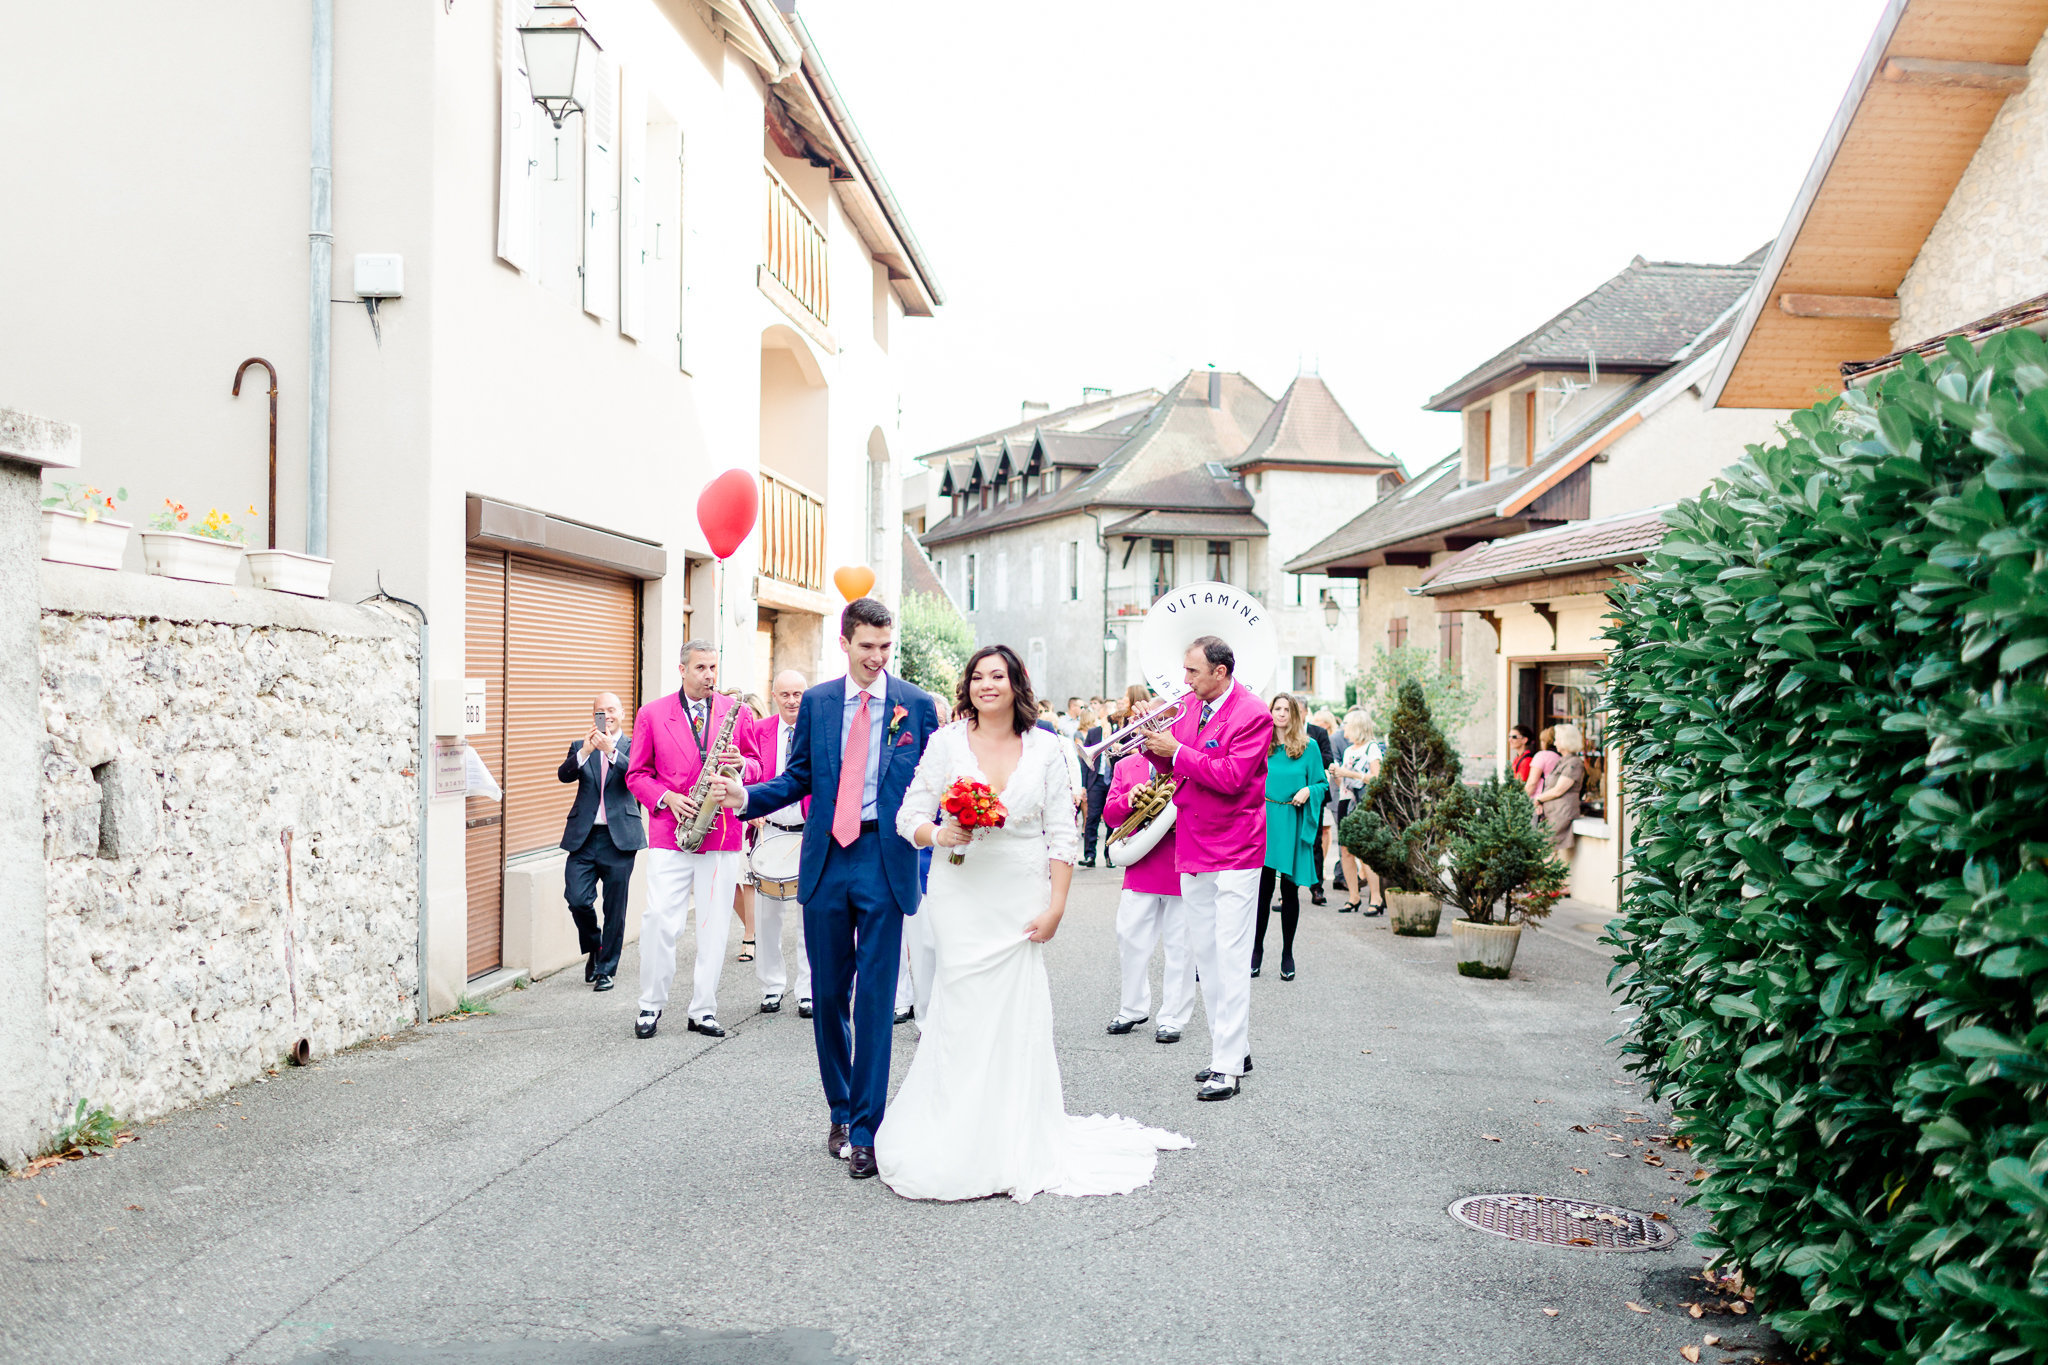 photographe-mariage-talloires-france-lisa-renault-photographie-wedding-destination-photographer-104